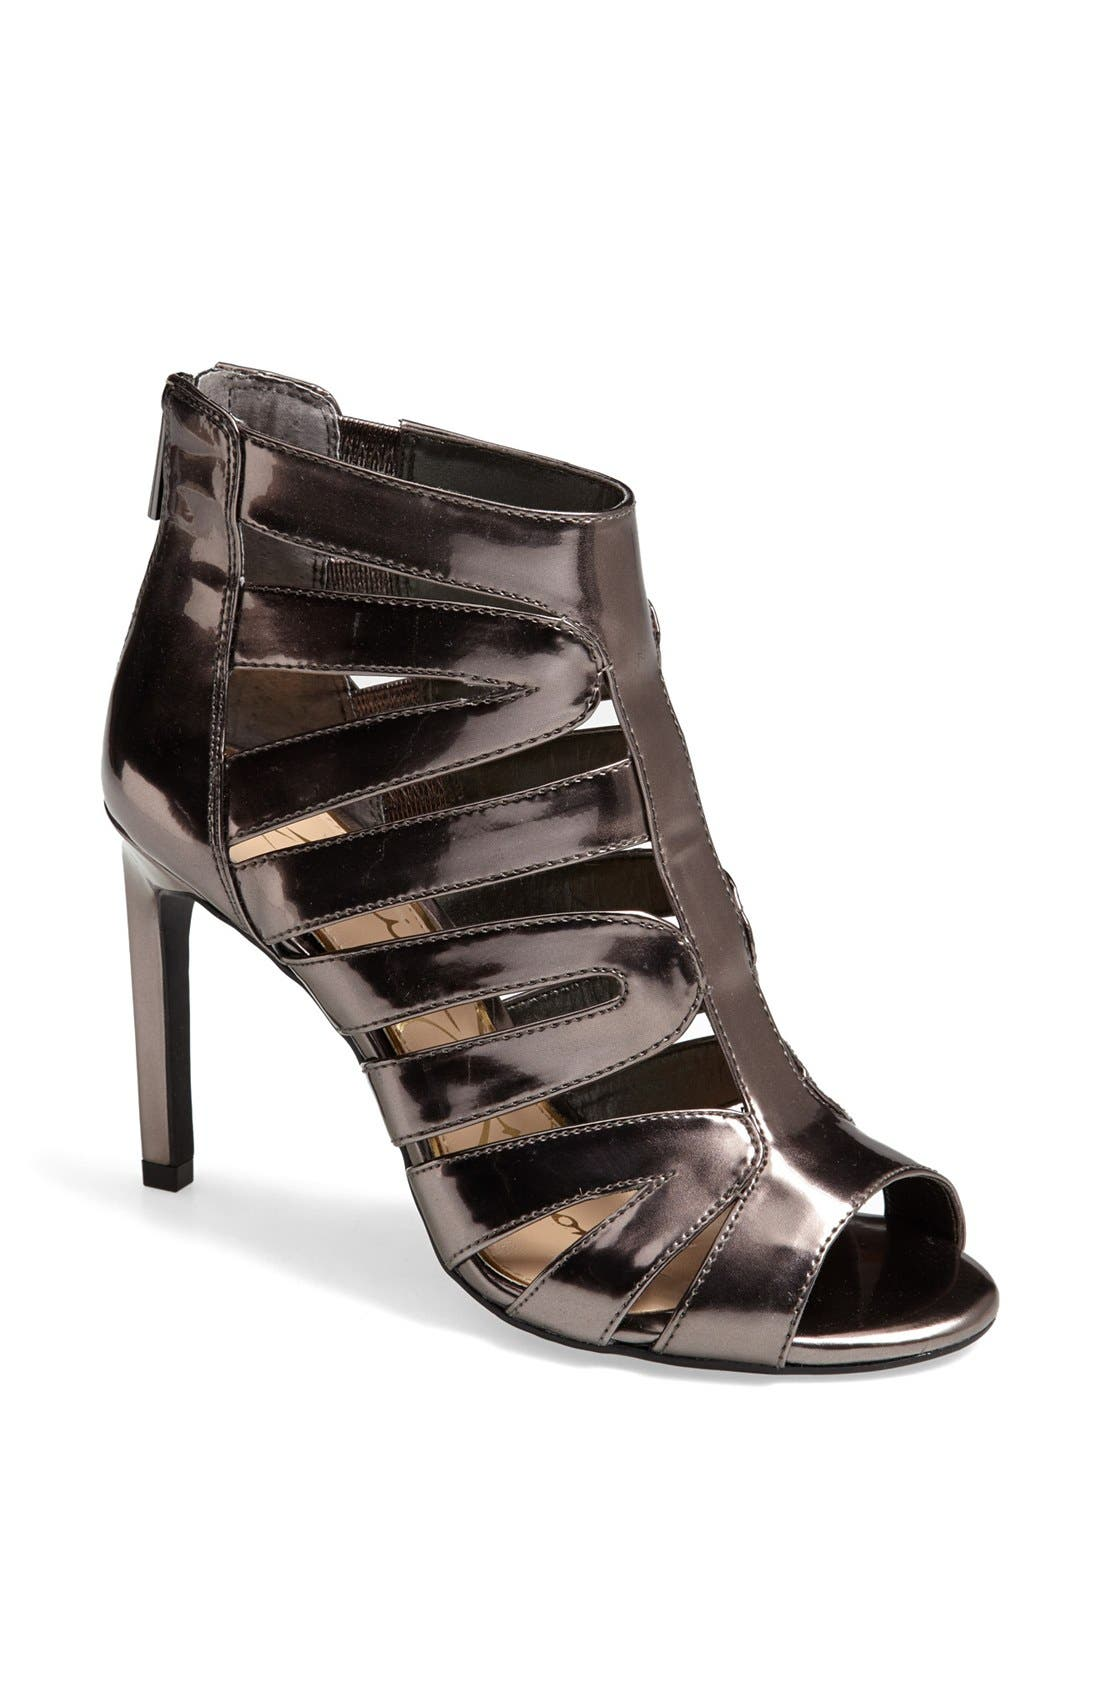 Alternate Image 1 Selected - Jessica Simpson 'Careyy' Sandal